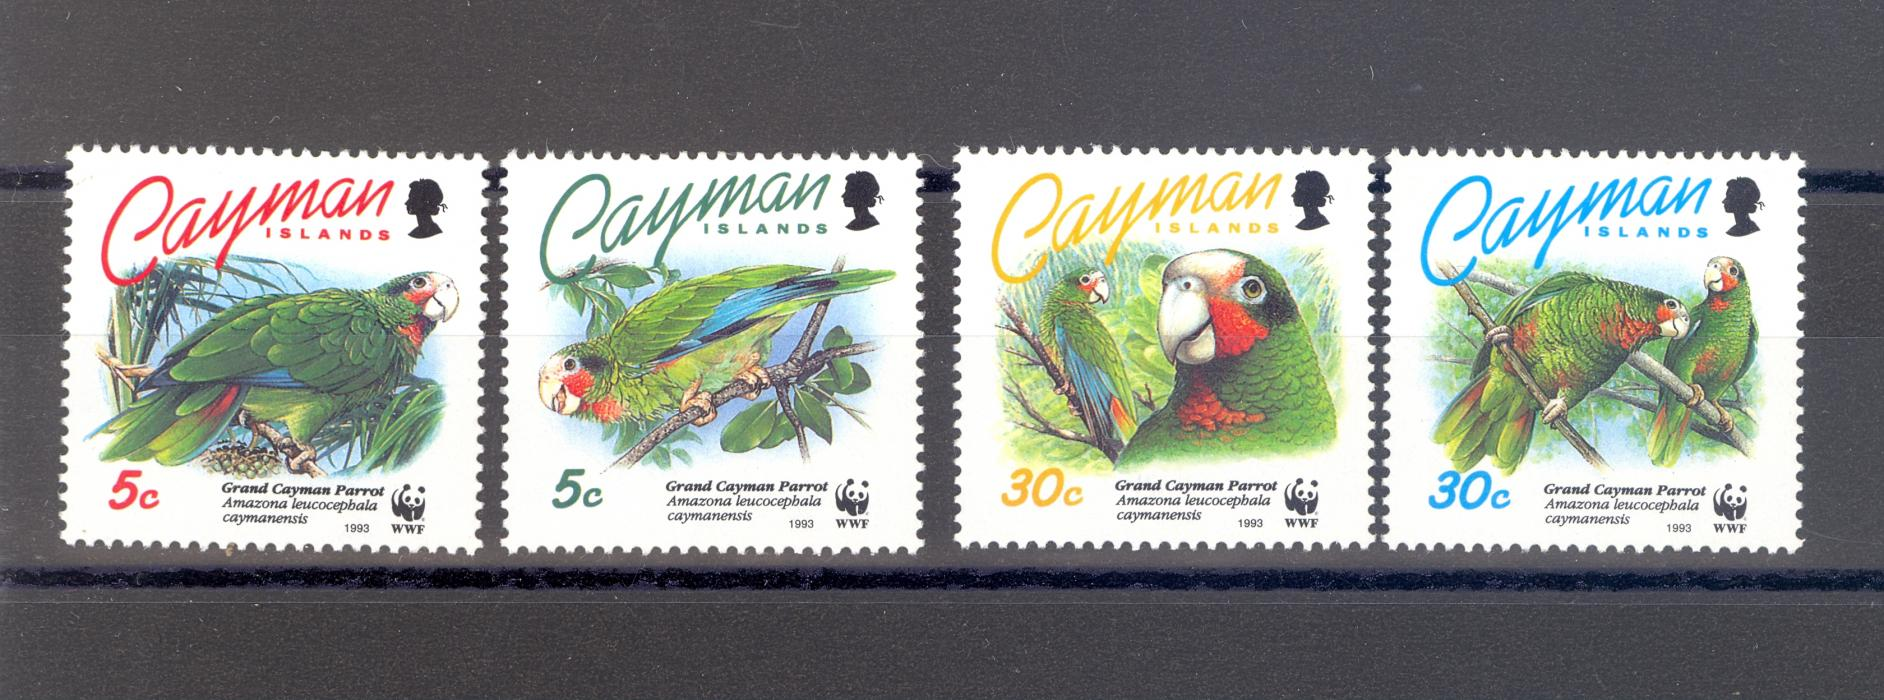 Cayman Islands SG 765-8 1995 Parrots Set MNH